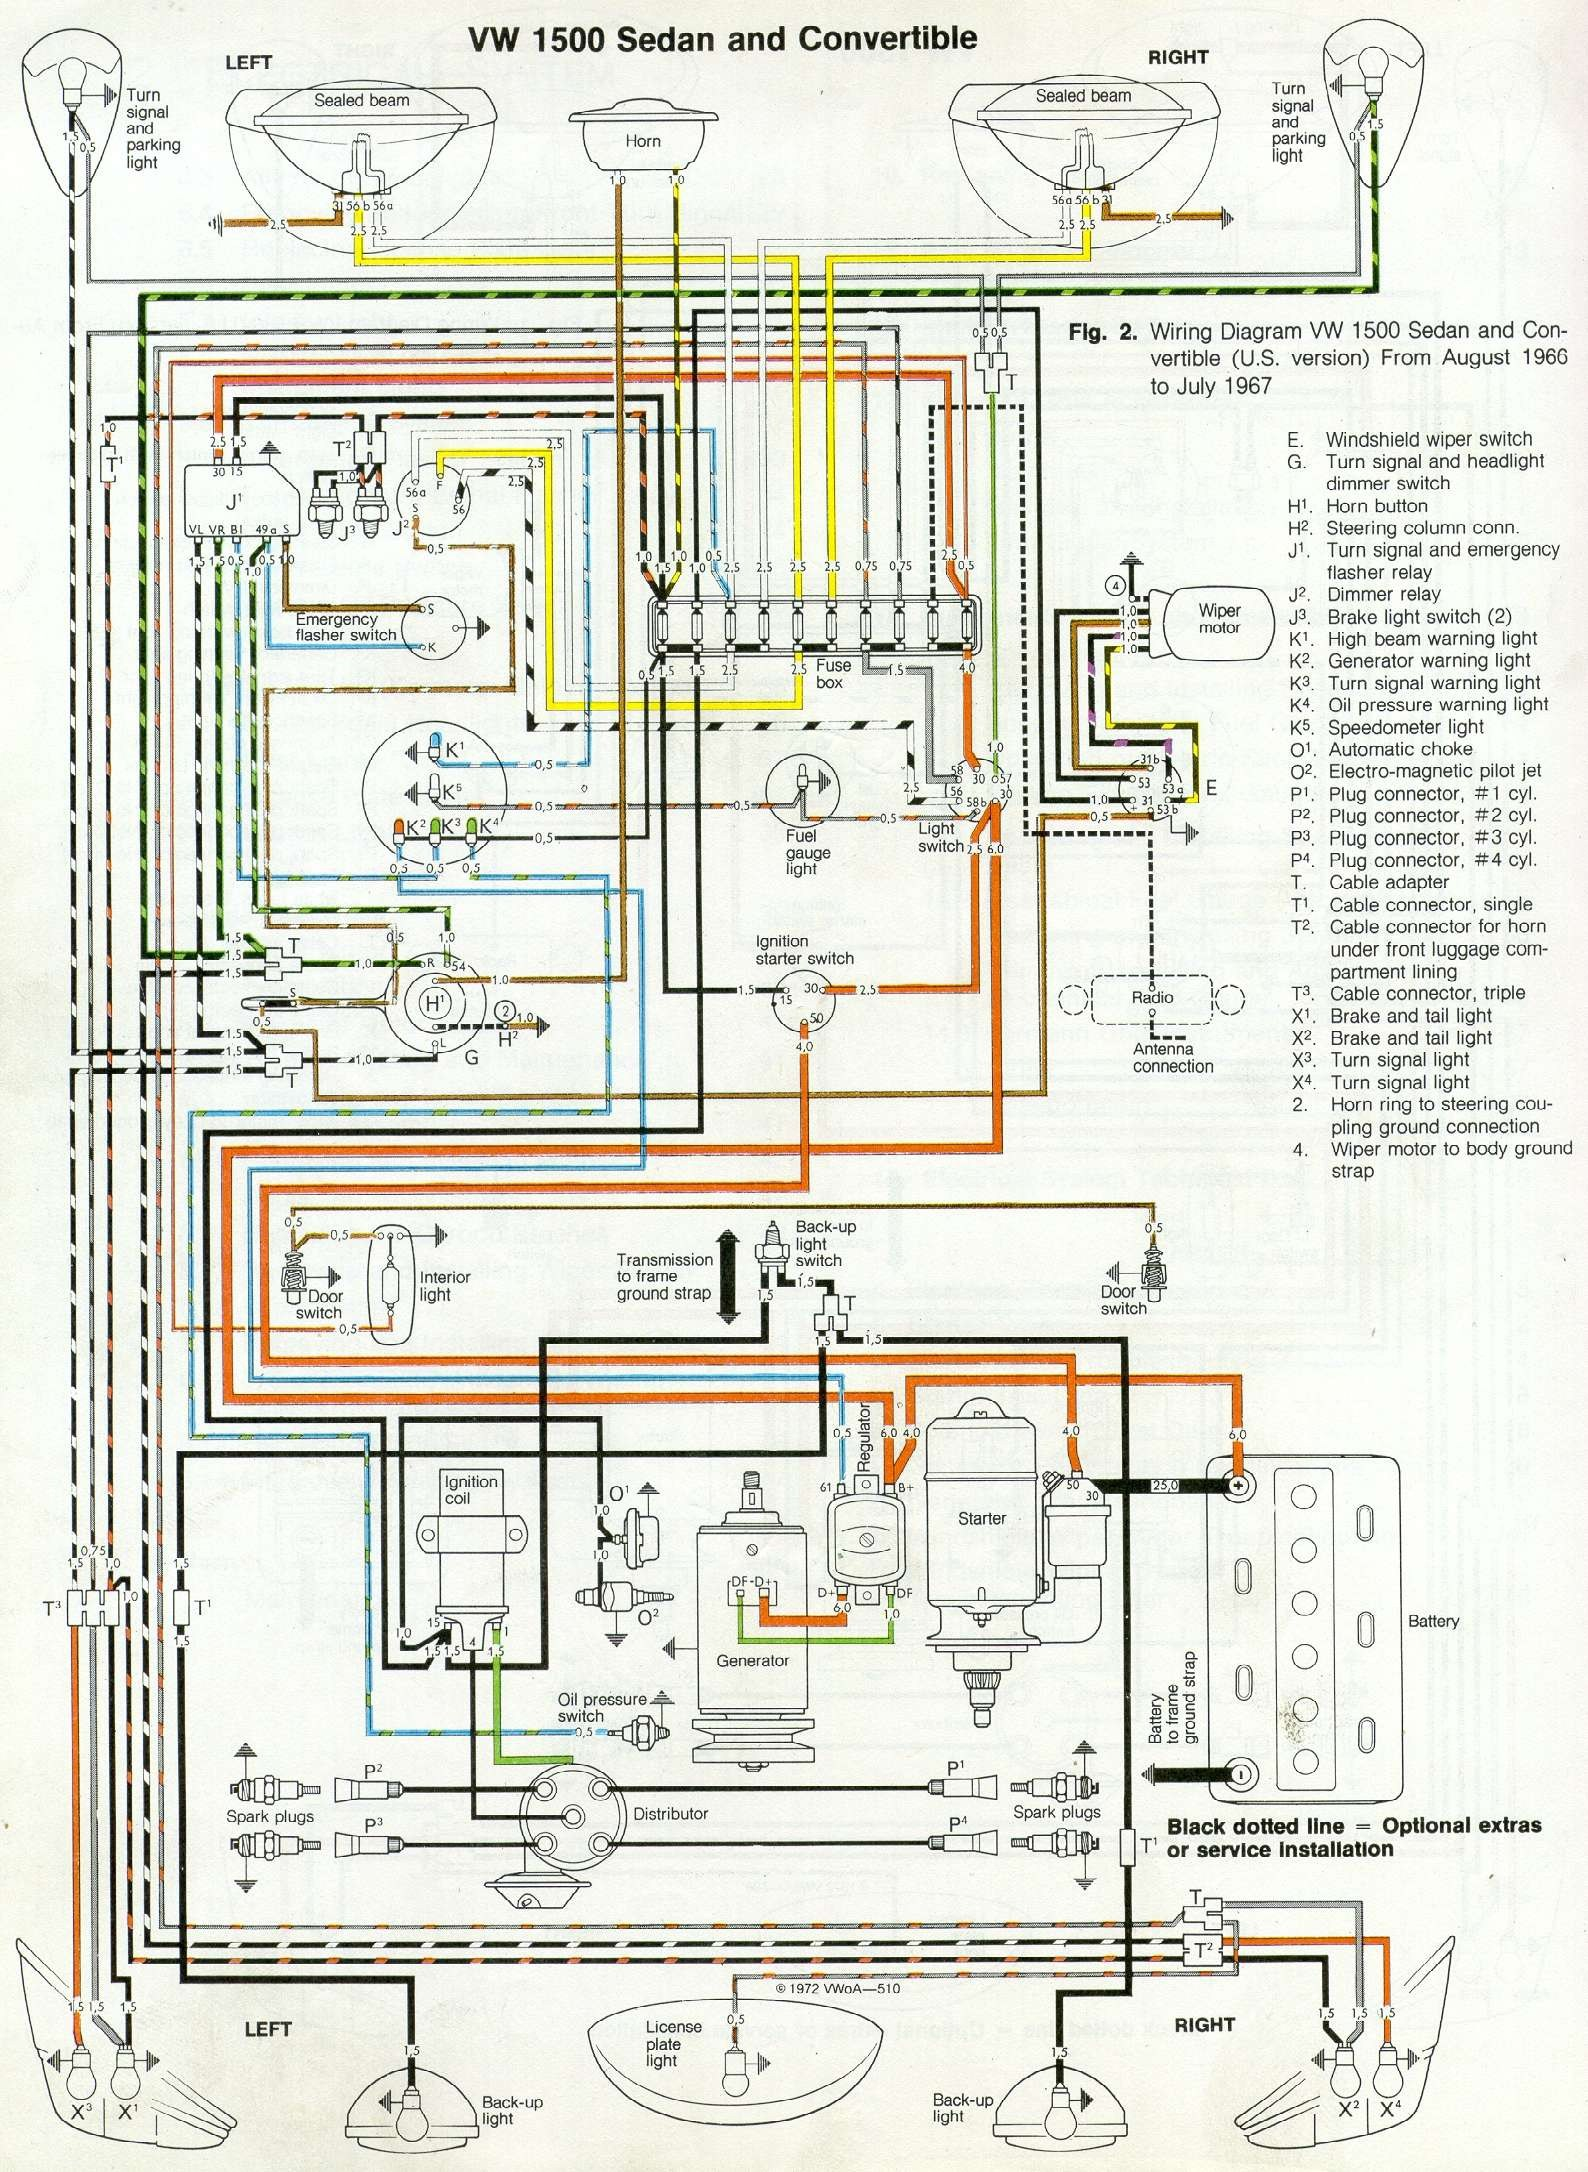 Vw Beetle Ignition Wiring Diagram Library 1964 Volkswagen 67 U S Version 1967 1970